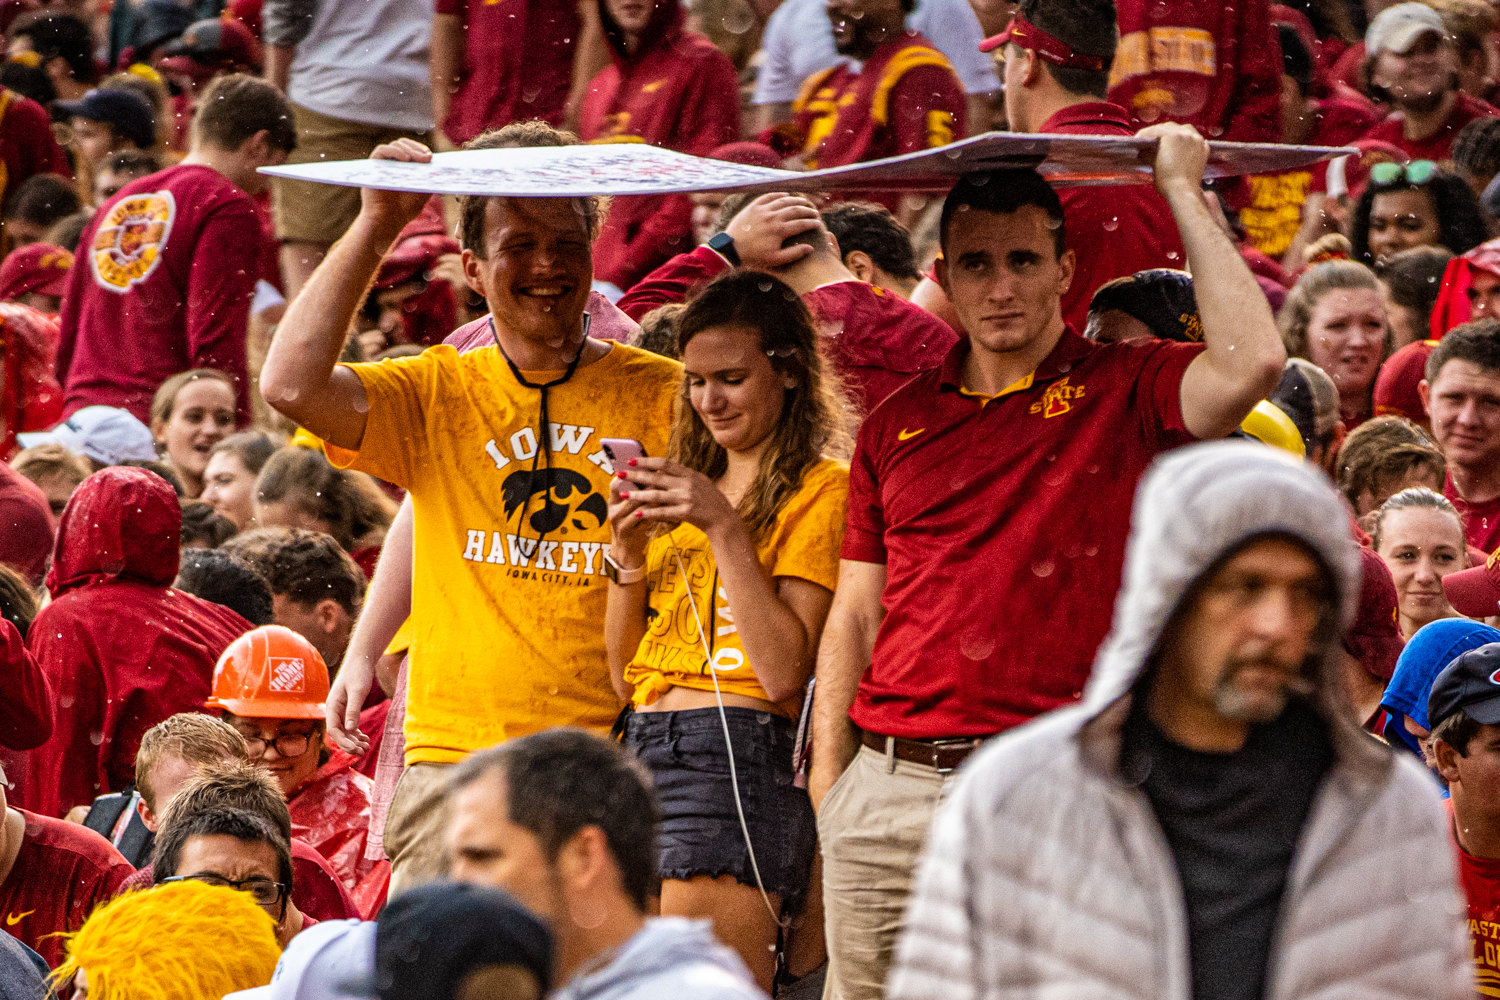 Spectators sit in the rain during a football game between Iowa and Iowa State at Jack Trice Stadium in Ames on Saturday, September 14, 2019. The Hawkeyes retained the Cy-Hawk Trophy for the fifth consecutive year, downing the Cyclones, 18-17.